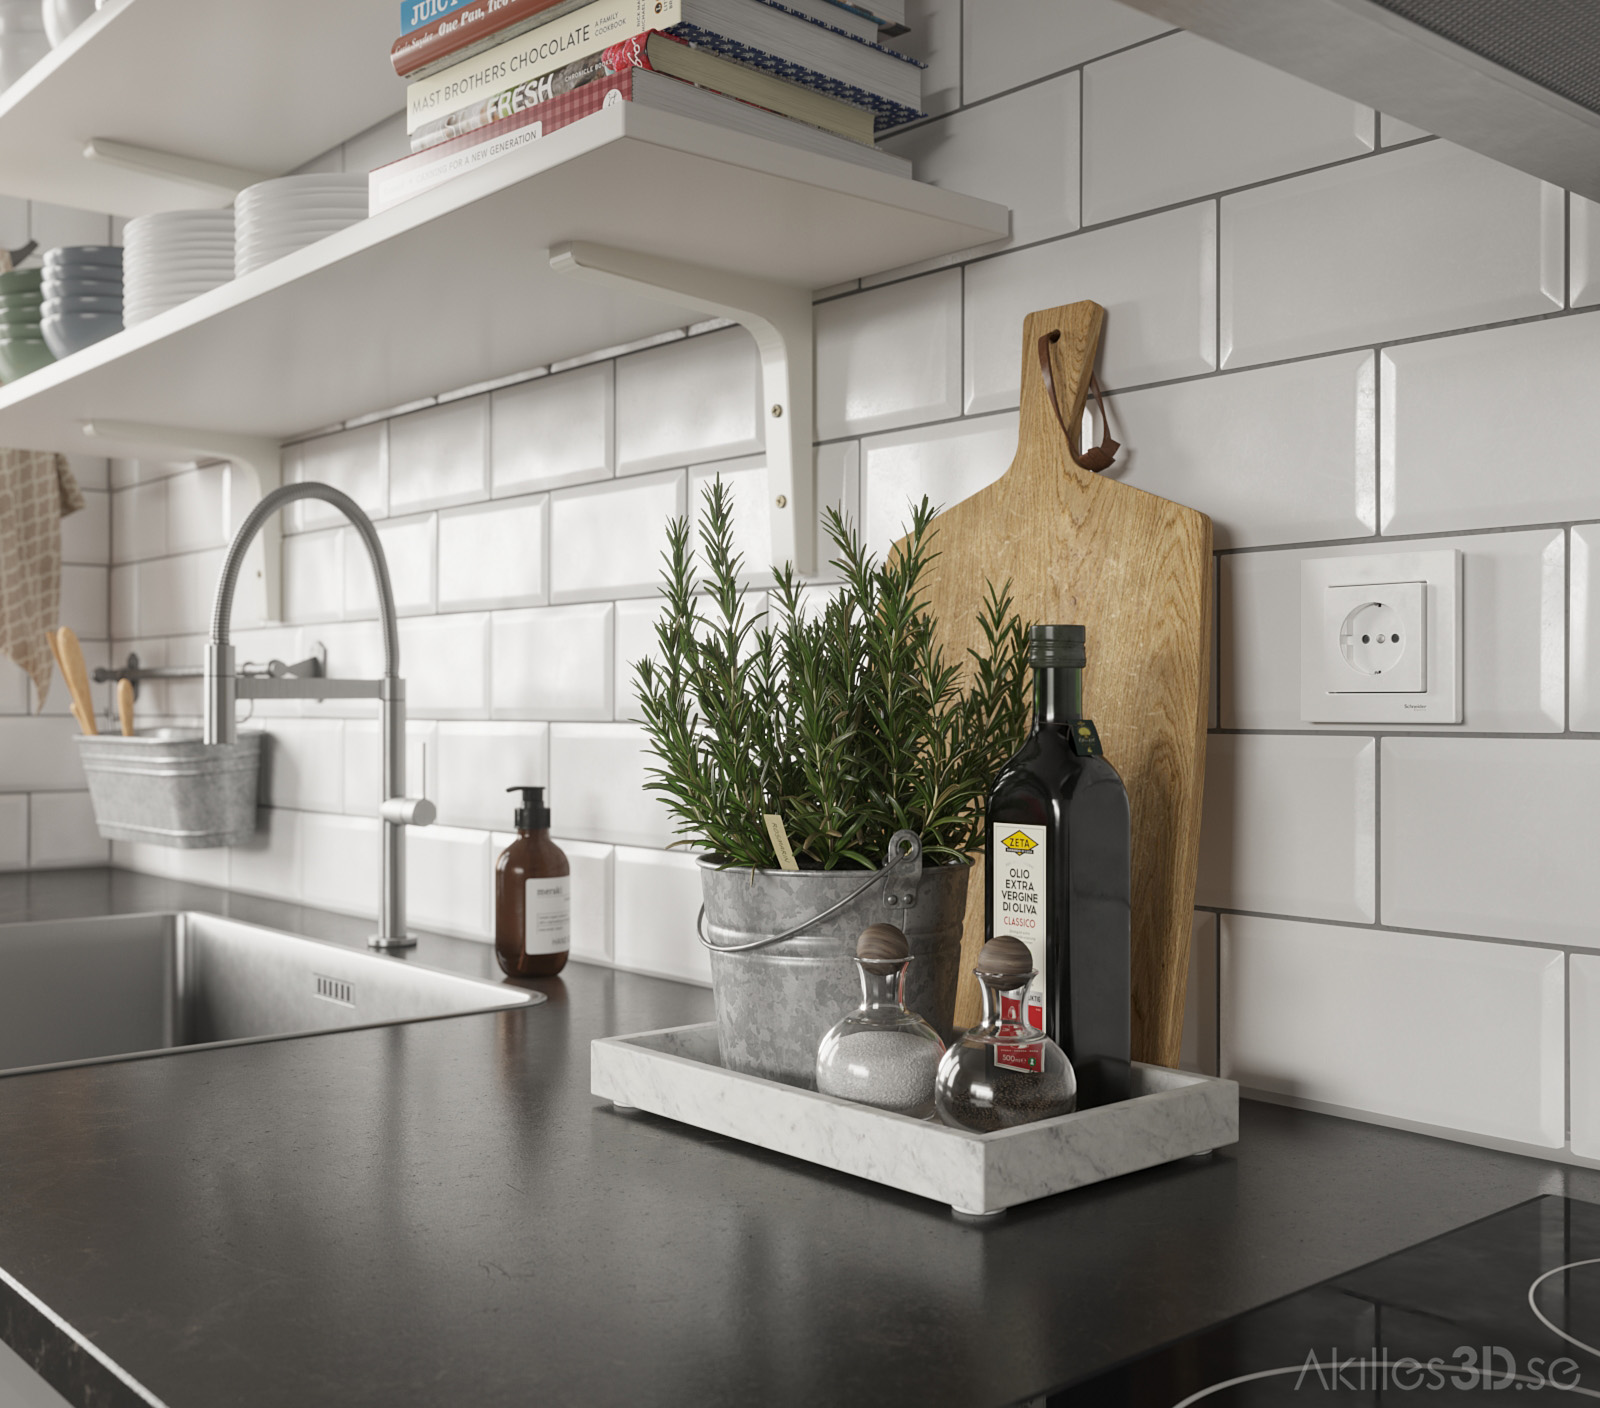 Kitchen Close-realistic 3D visualization interior architecture CGI high-end top quality scandinavian illustration photorealistic